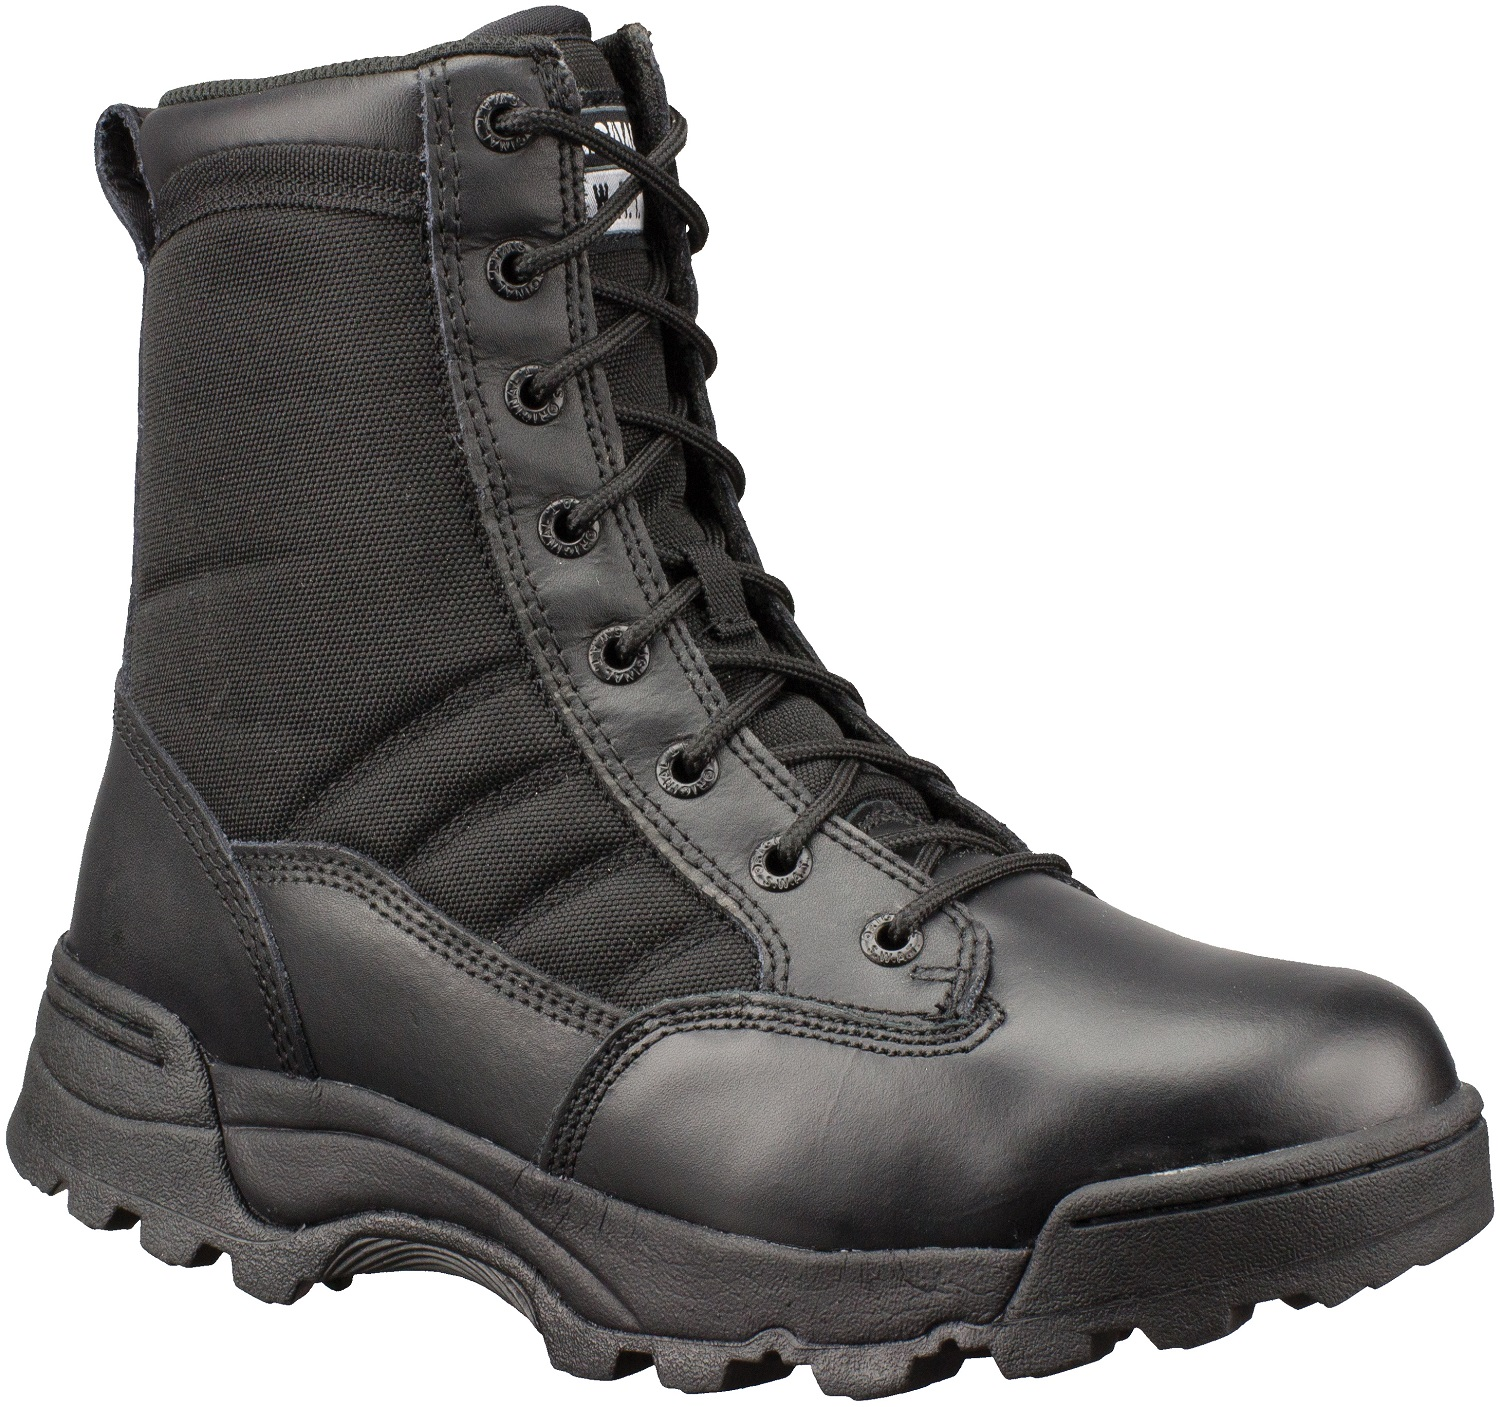 Mens Military Combat Boots | Fashion Boots